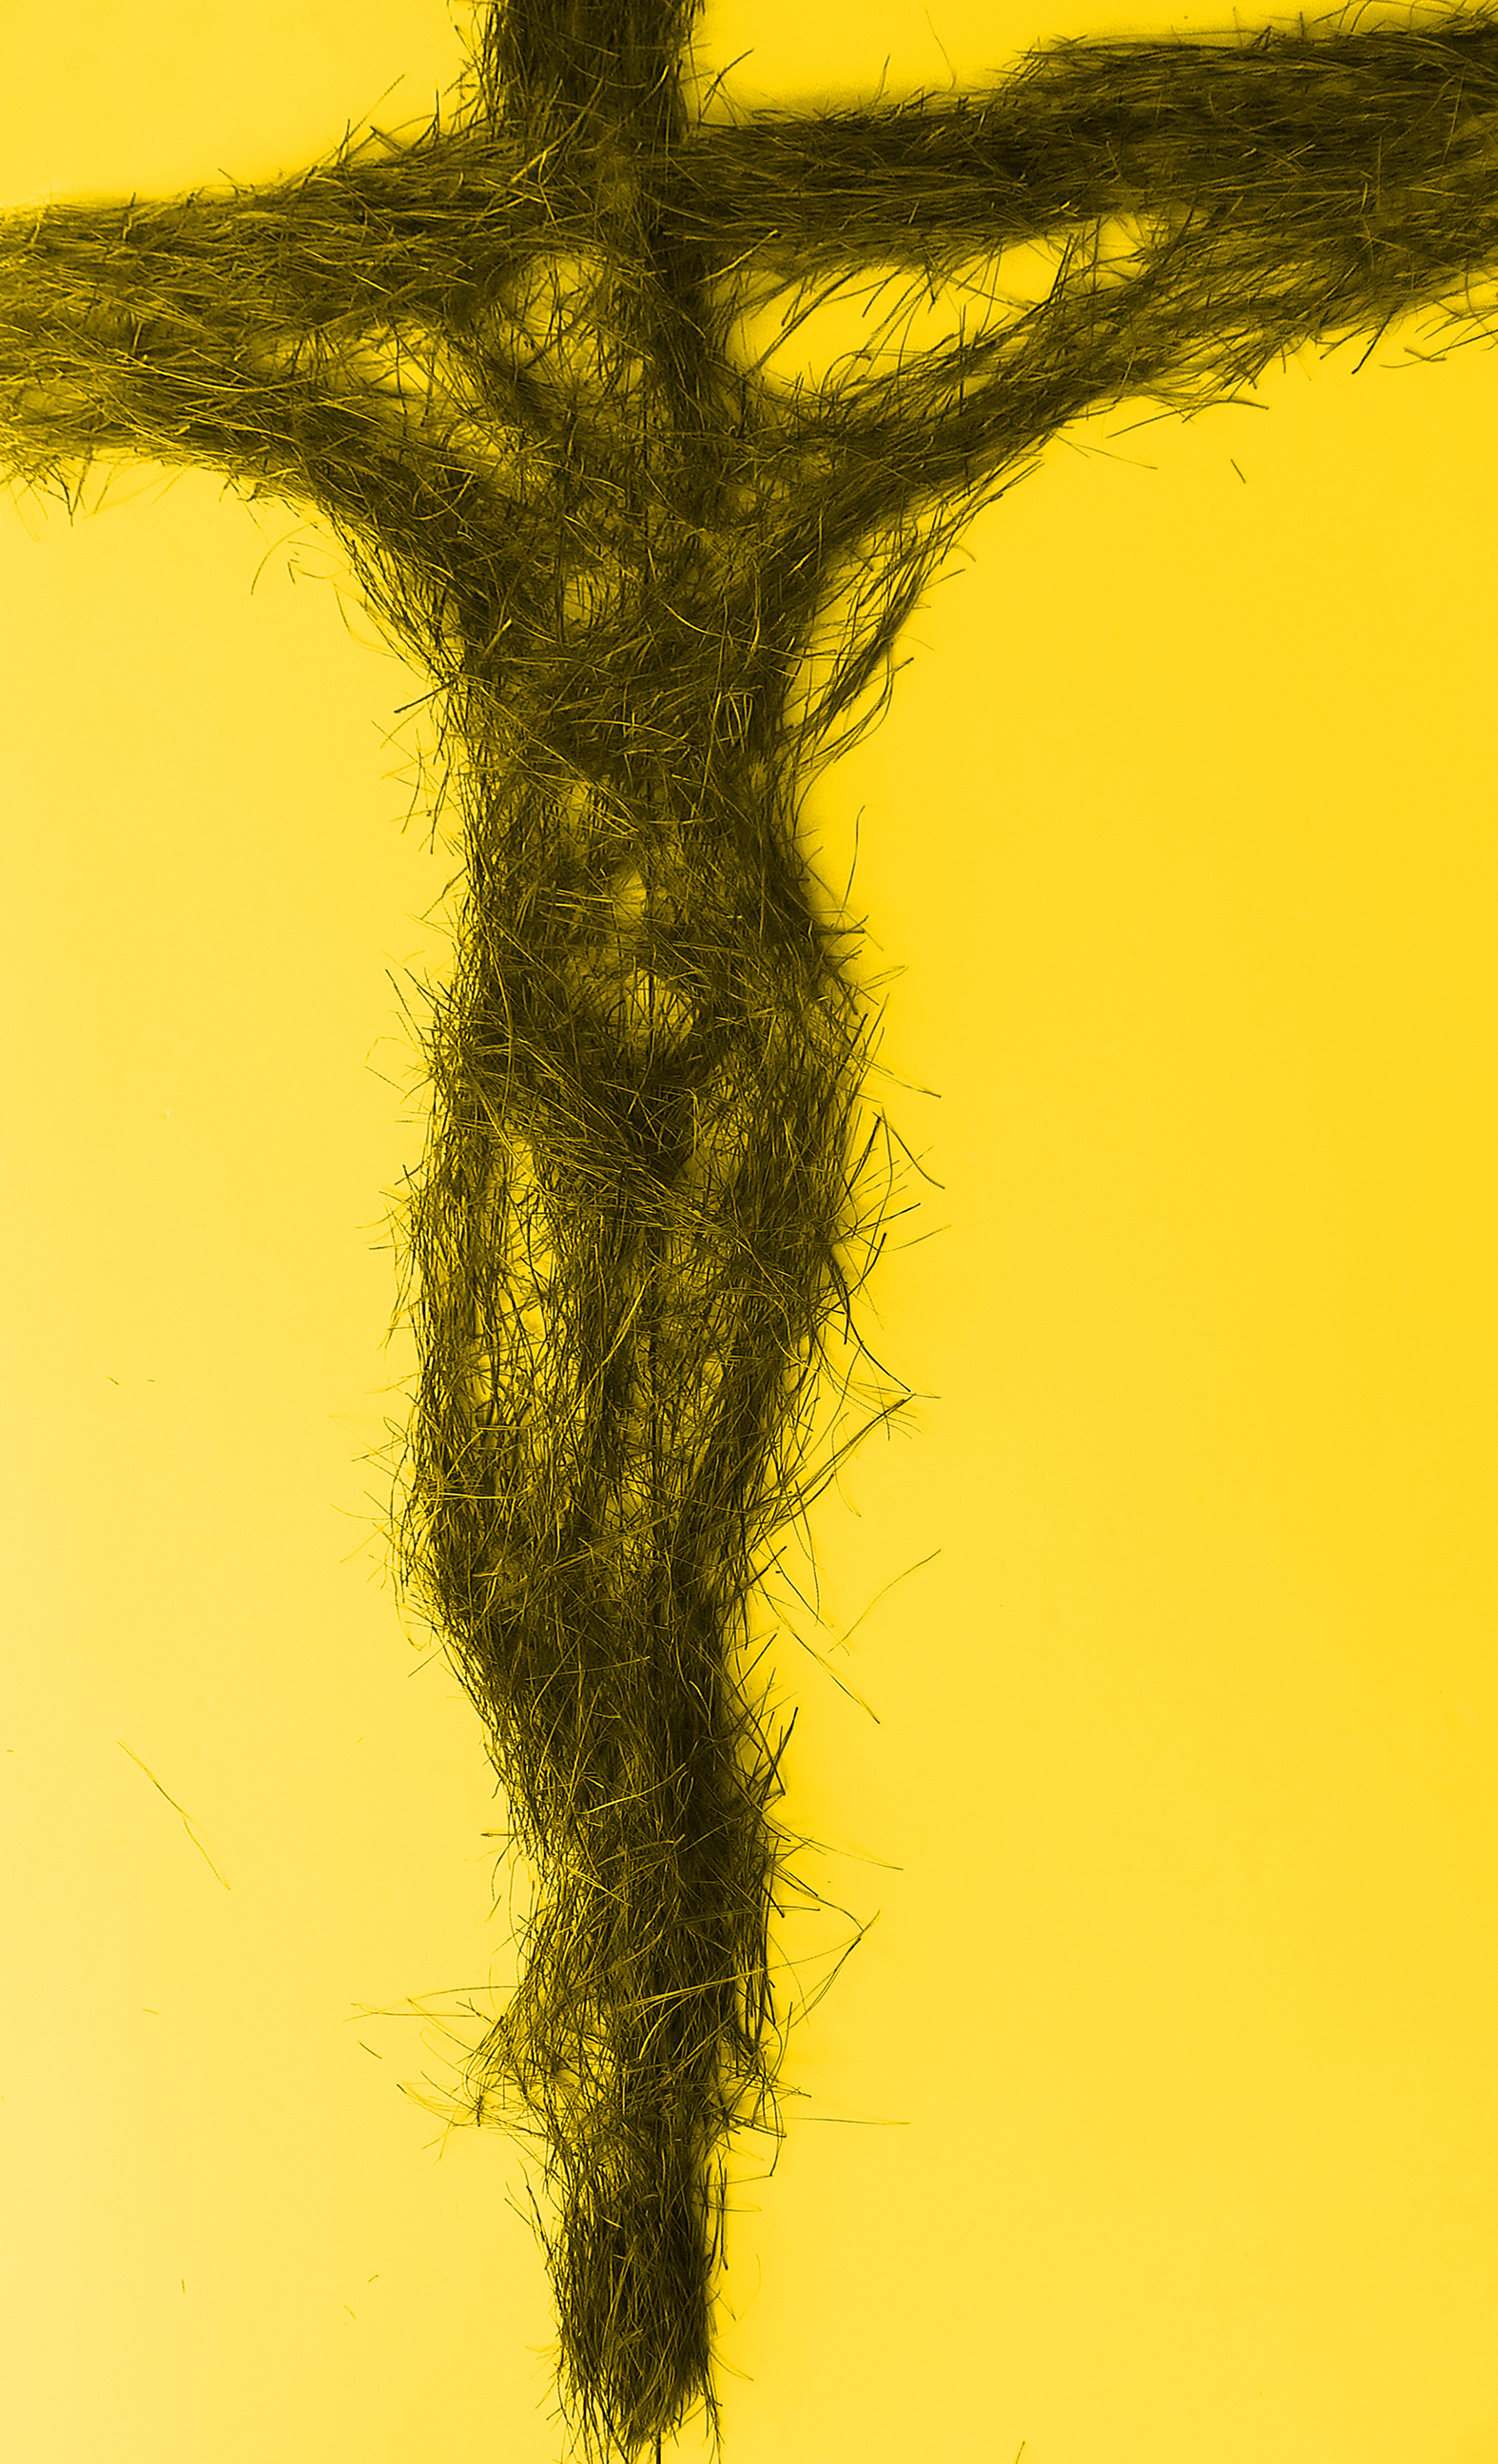 Crucifixion of the innoncent, 2015, digital print on paper.